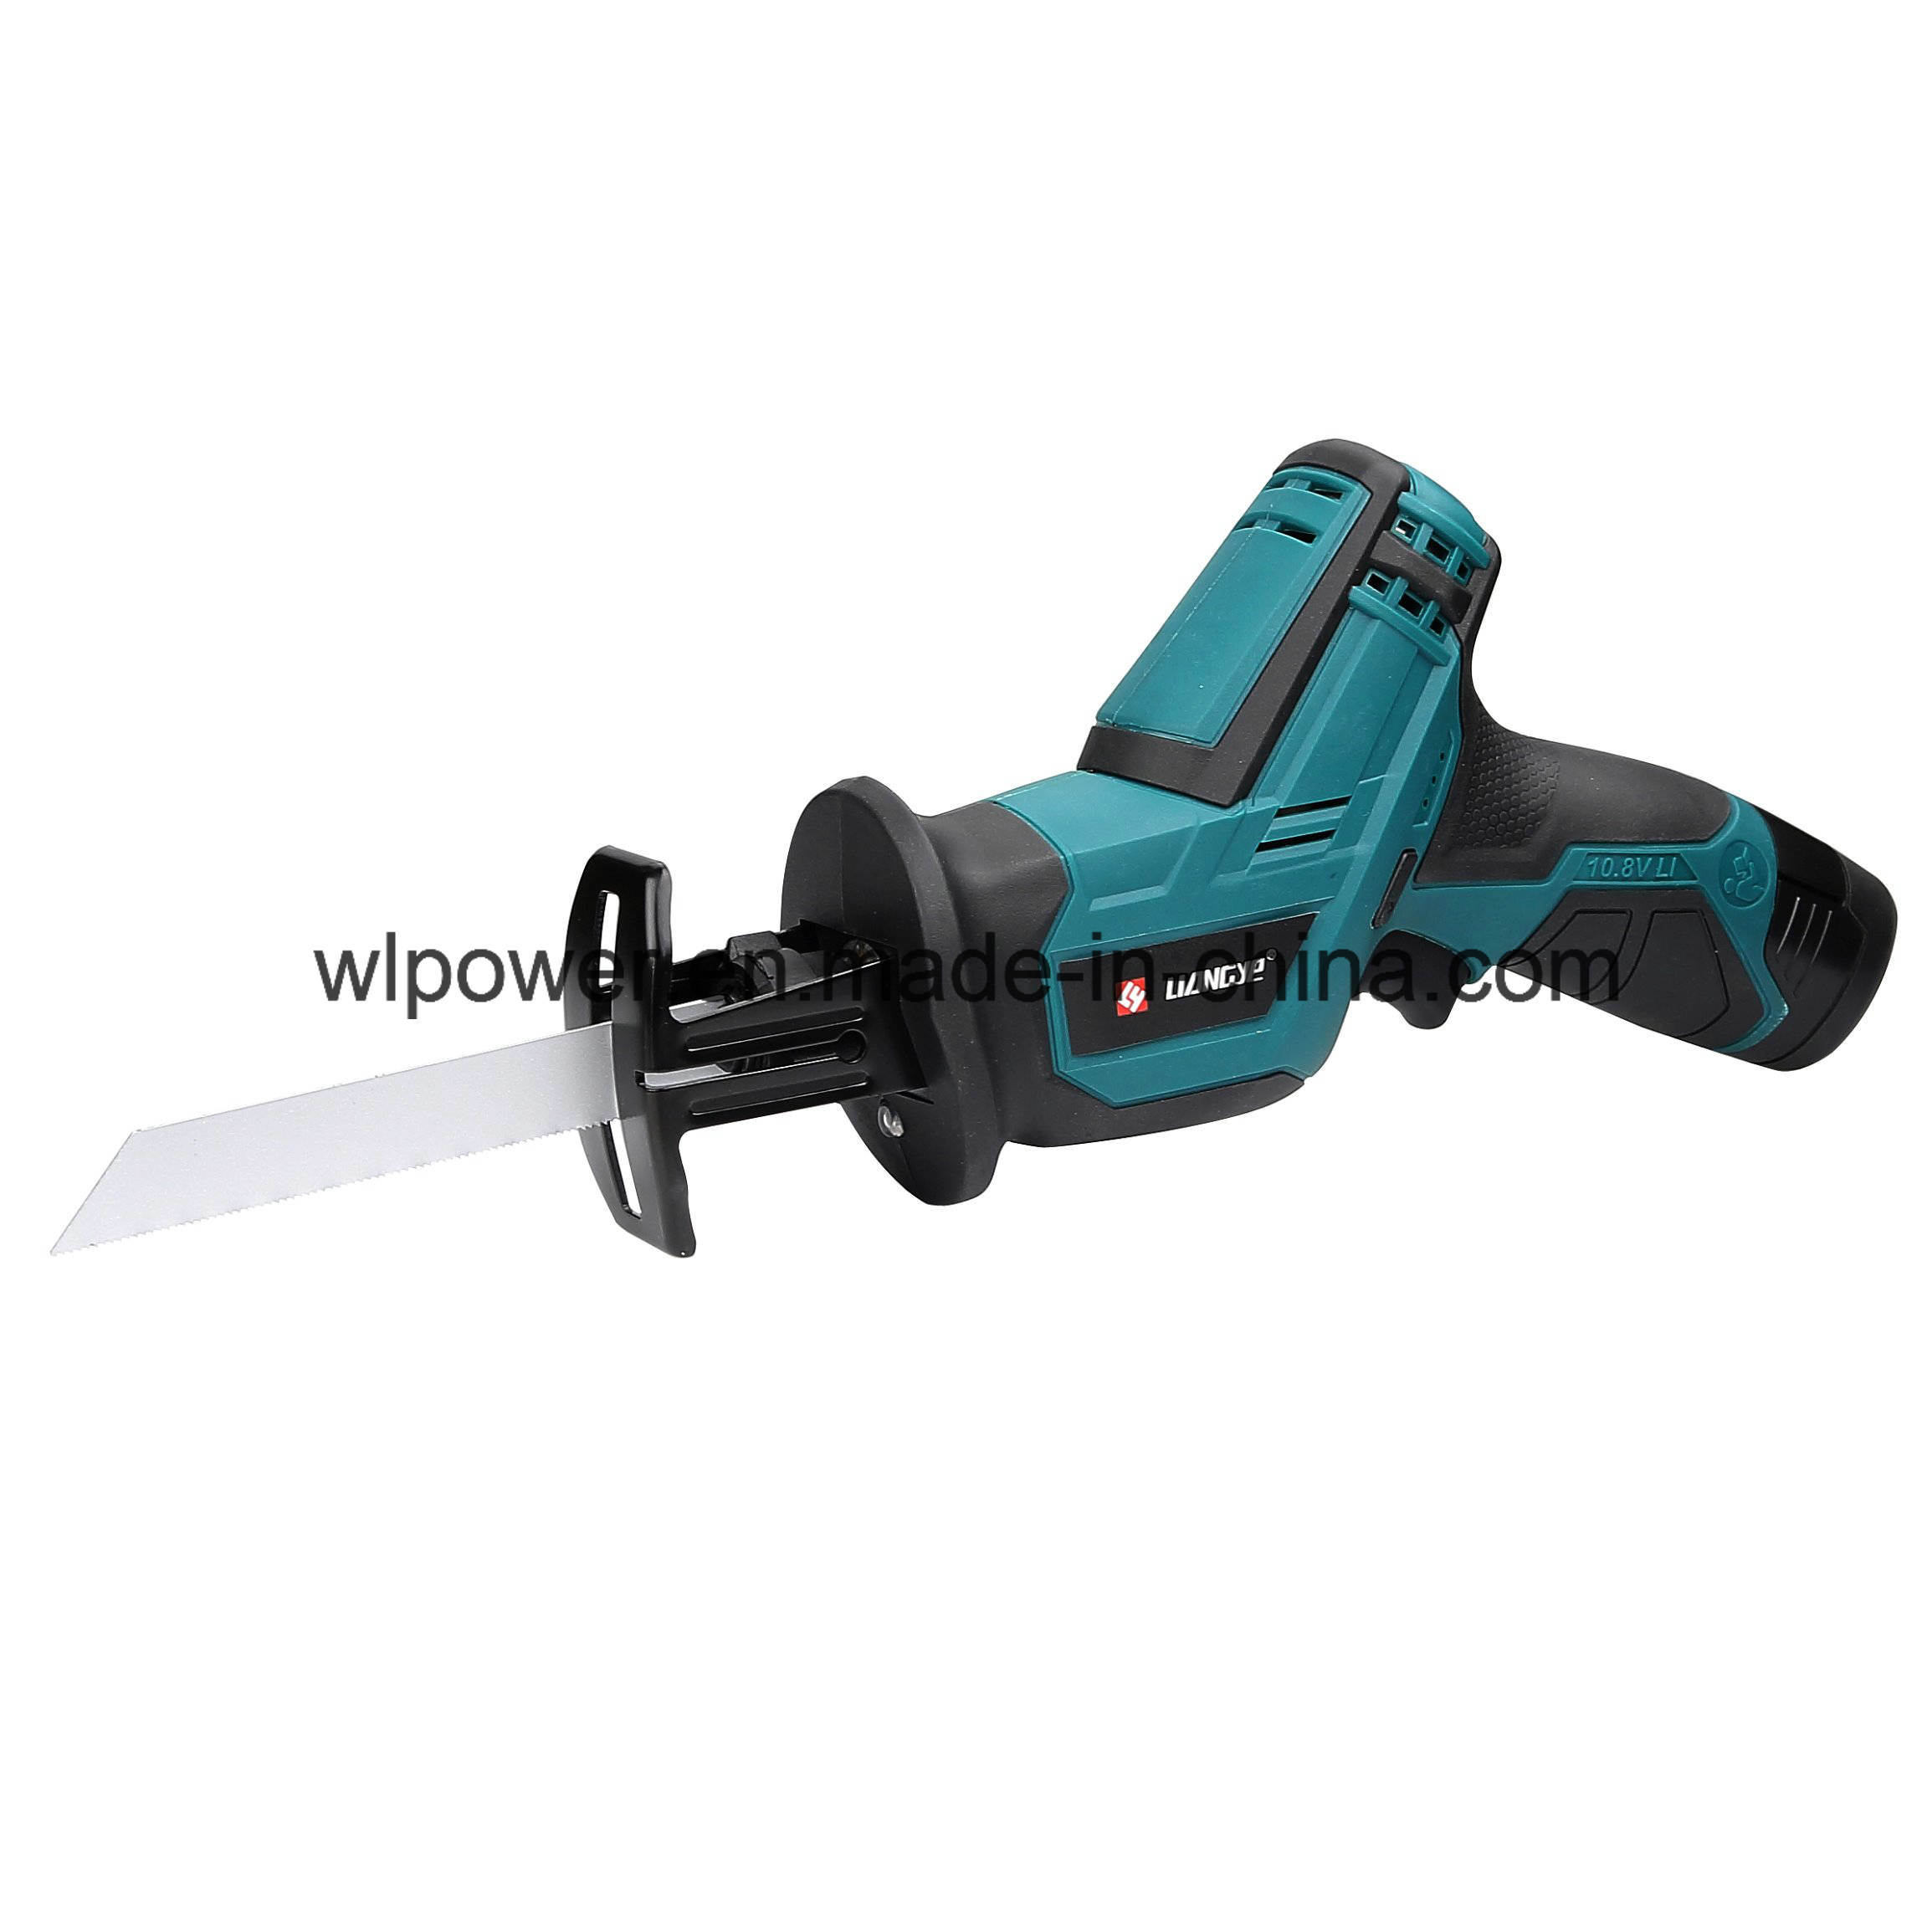 10.8V Cordless Reciprocating Saw Rechargeable Power Tool